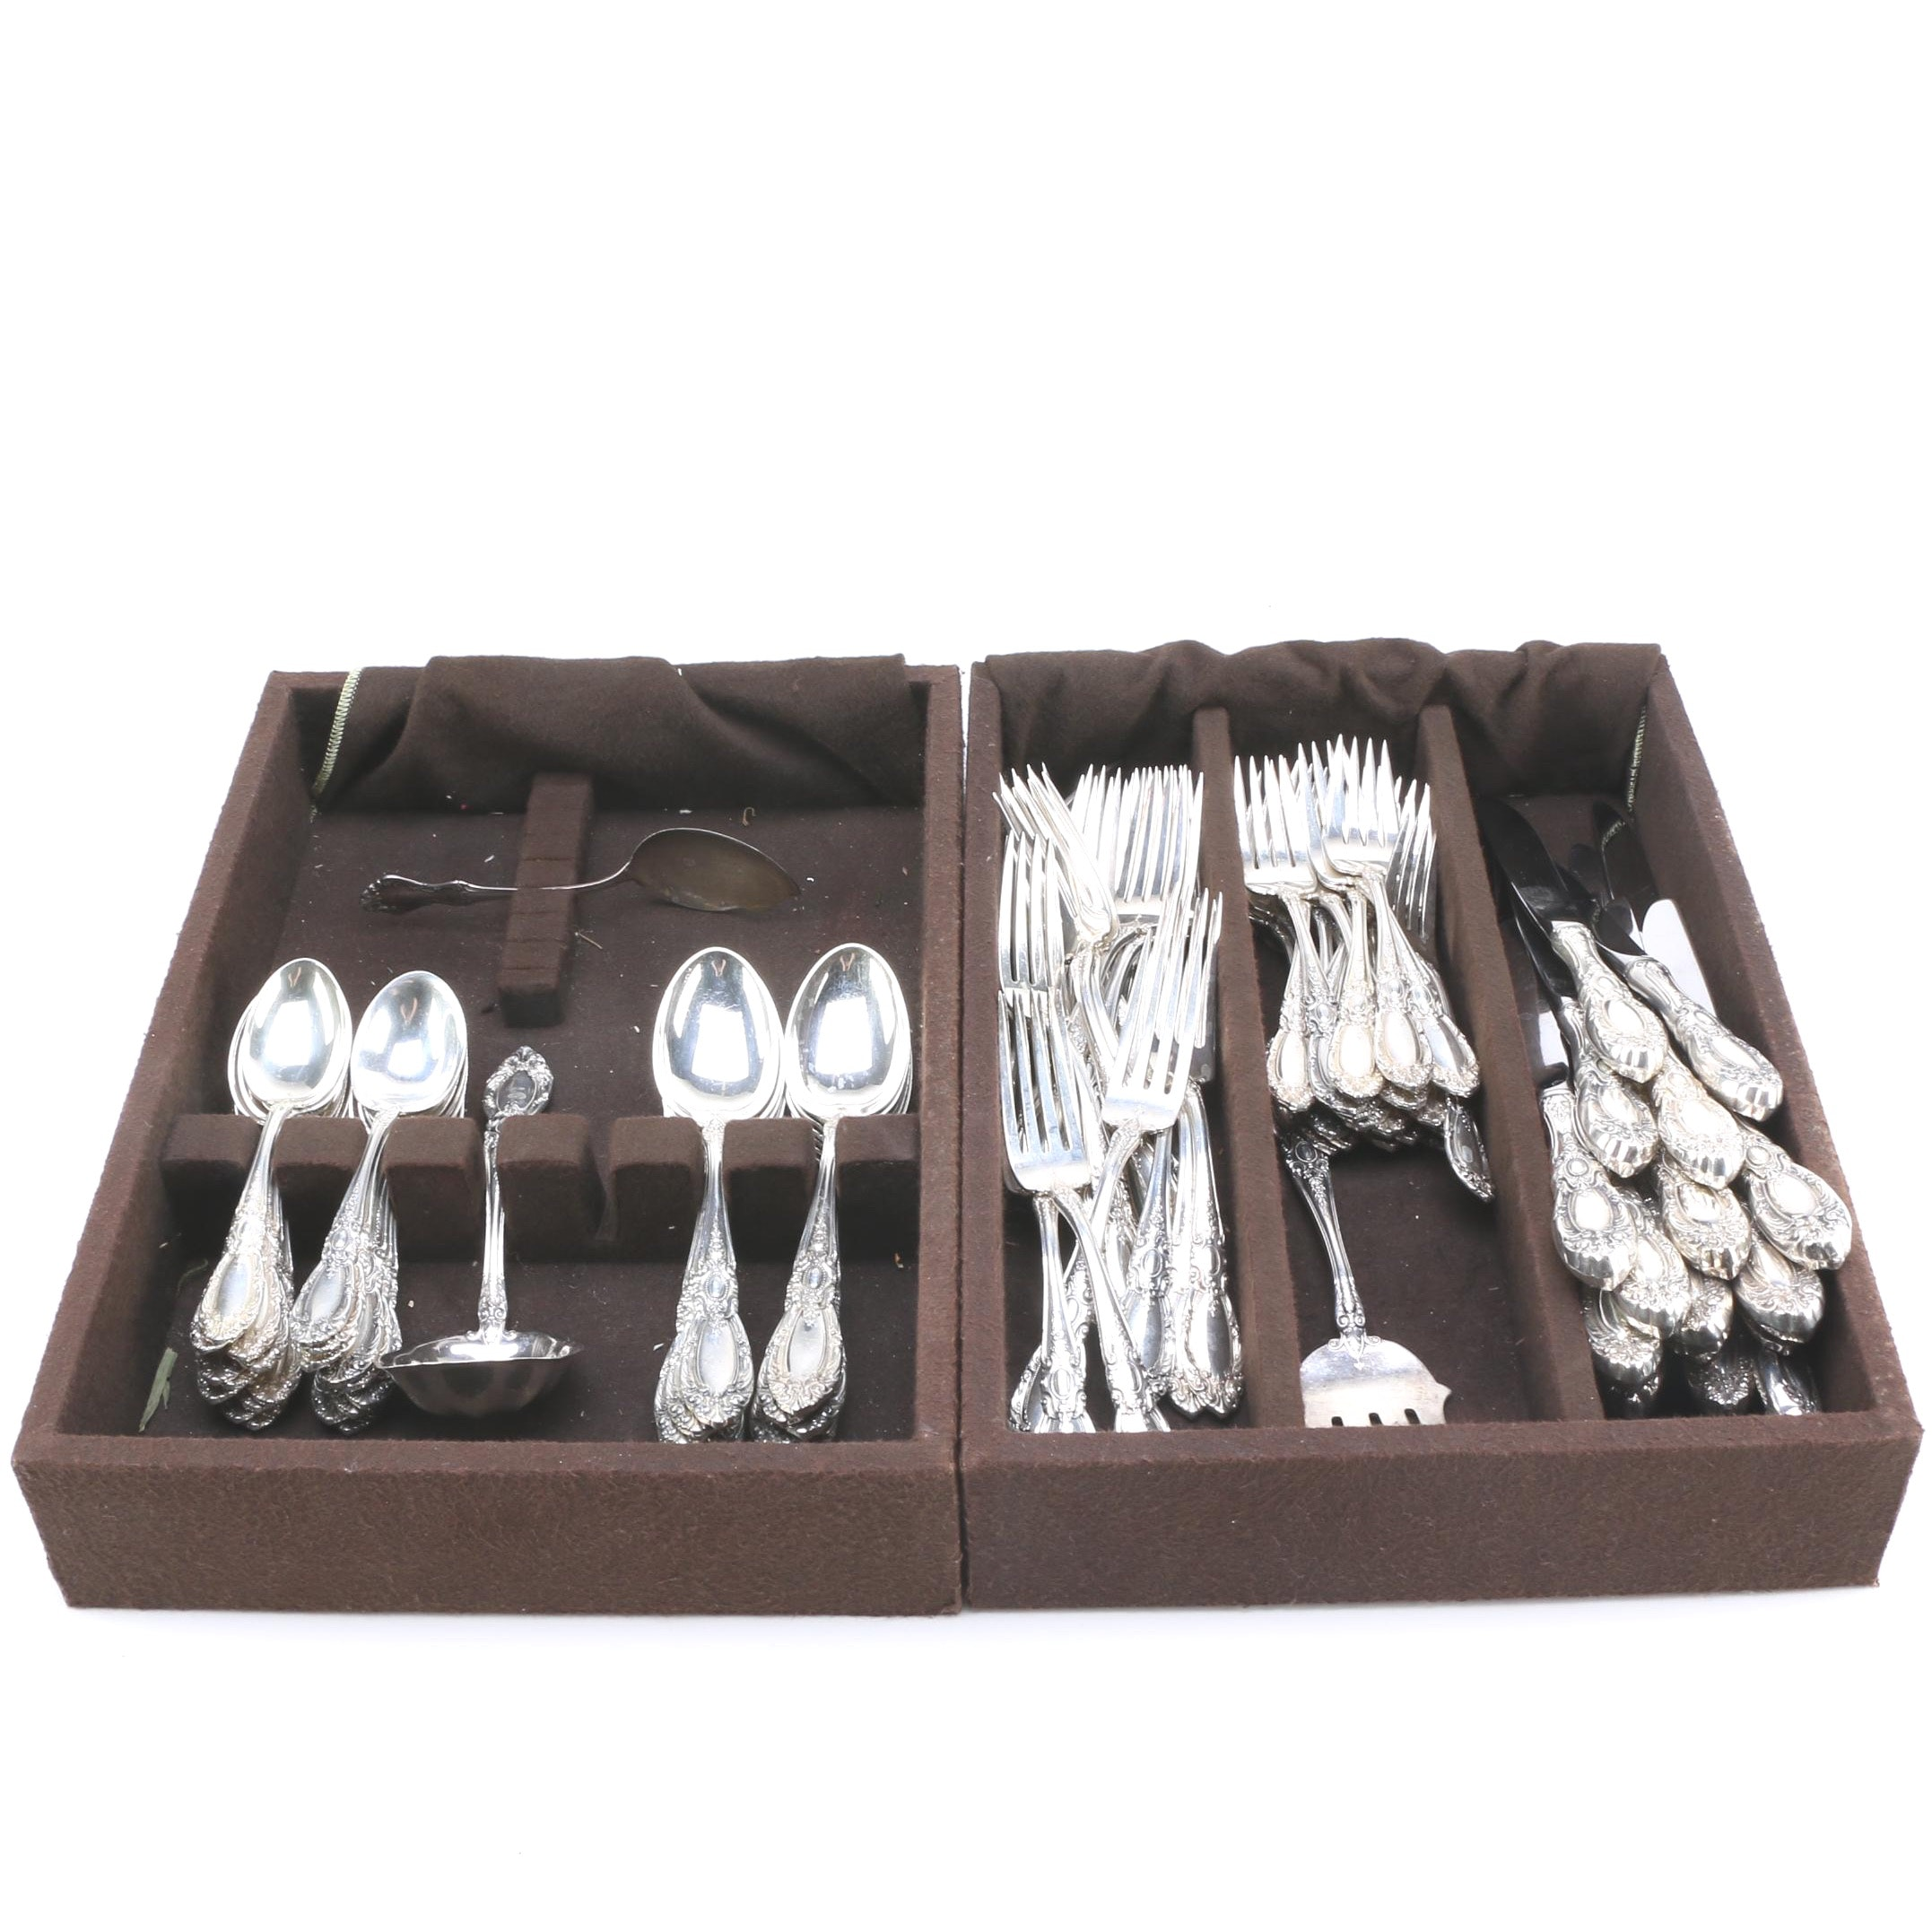 Set of Towle and National Sterling Flatware and Boxes